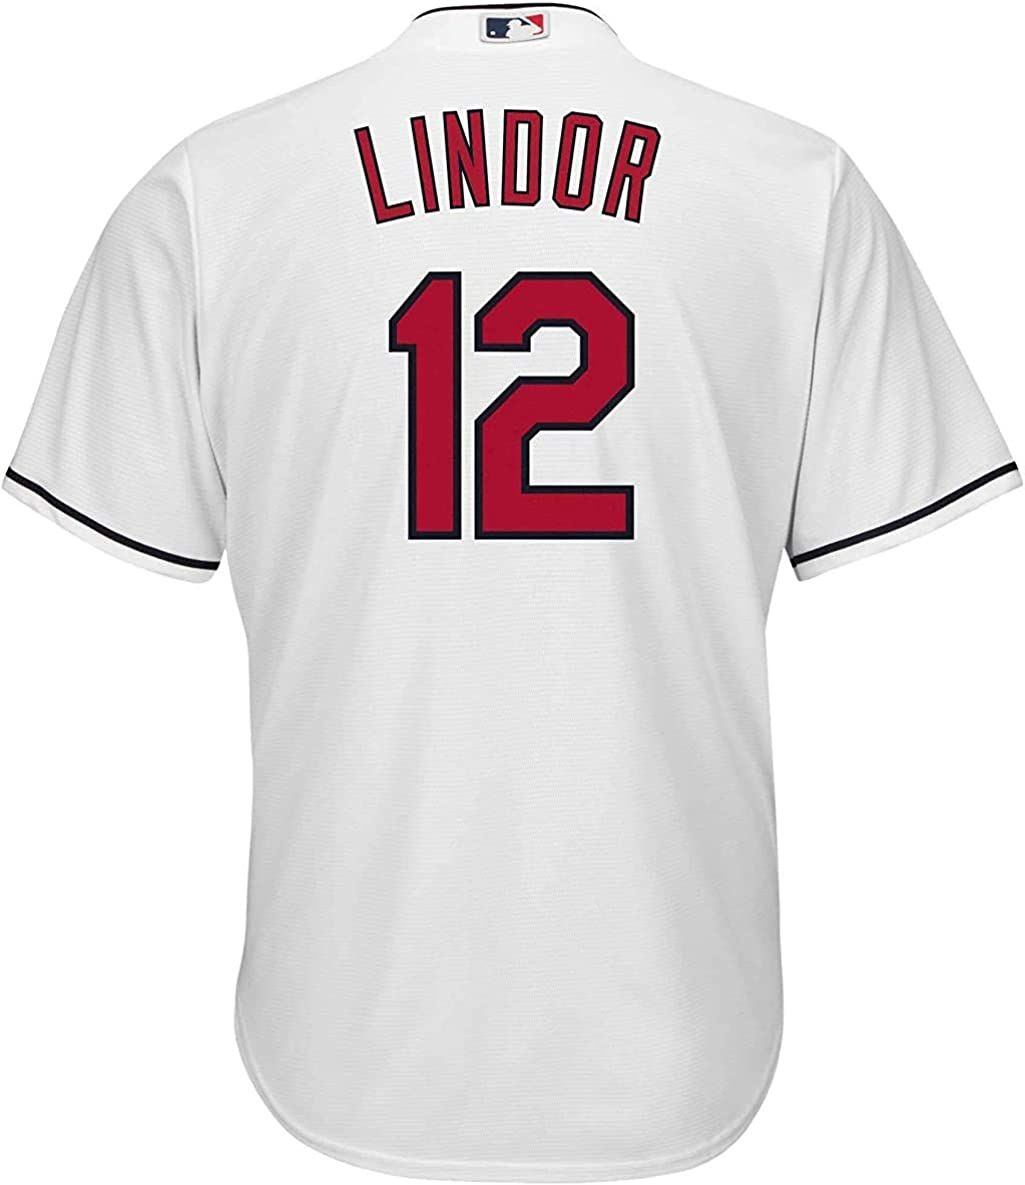 Outerstuff Francisco Lindor Cleveland Indians White Youth Cool Base Home Replica Jersey